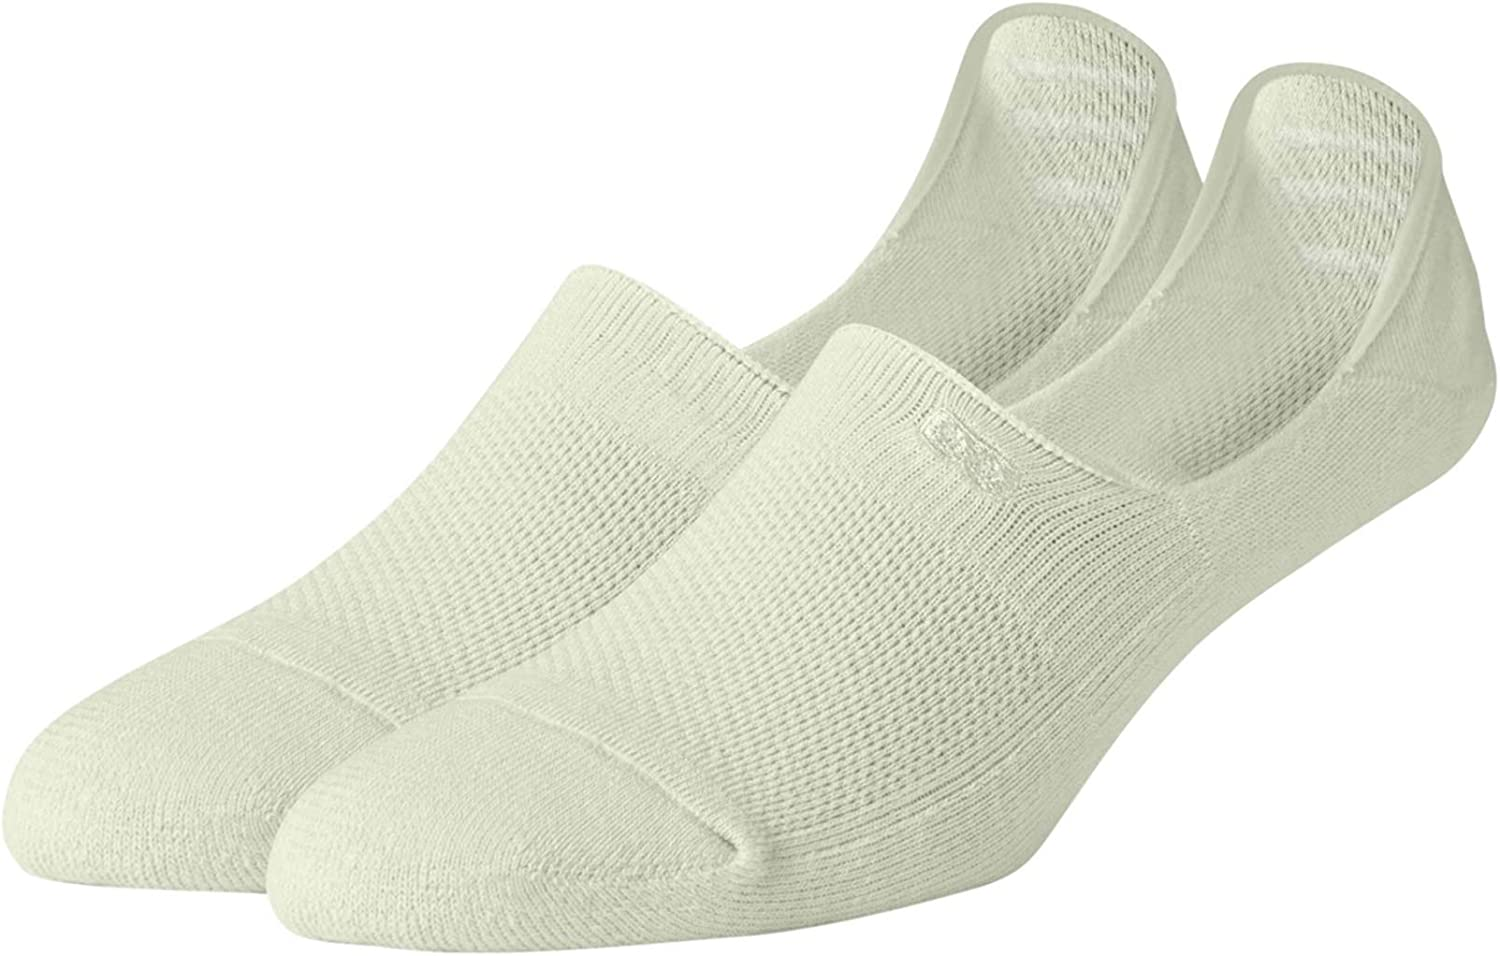 Pair of Thieves Mens Prism No Show Socks, Green, One Size